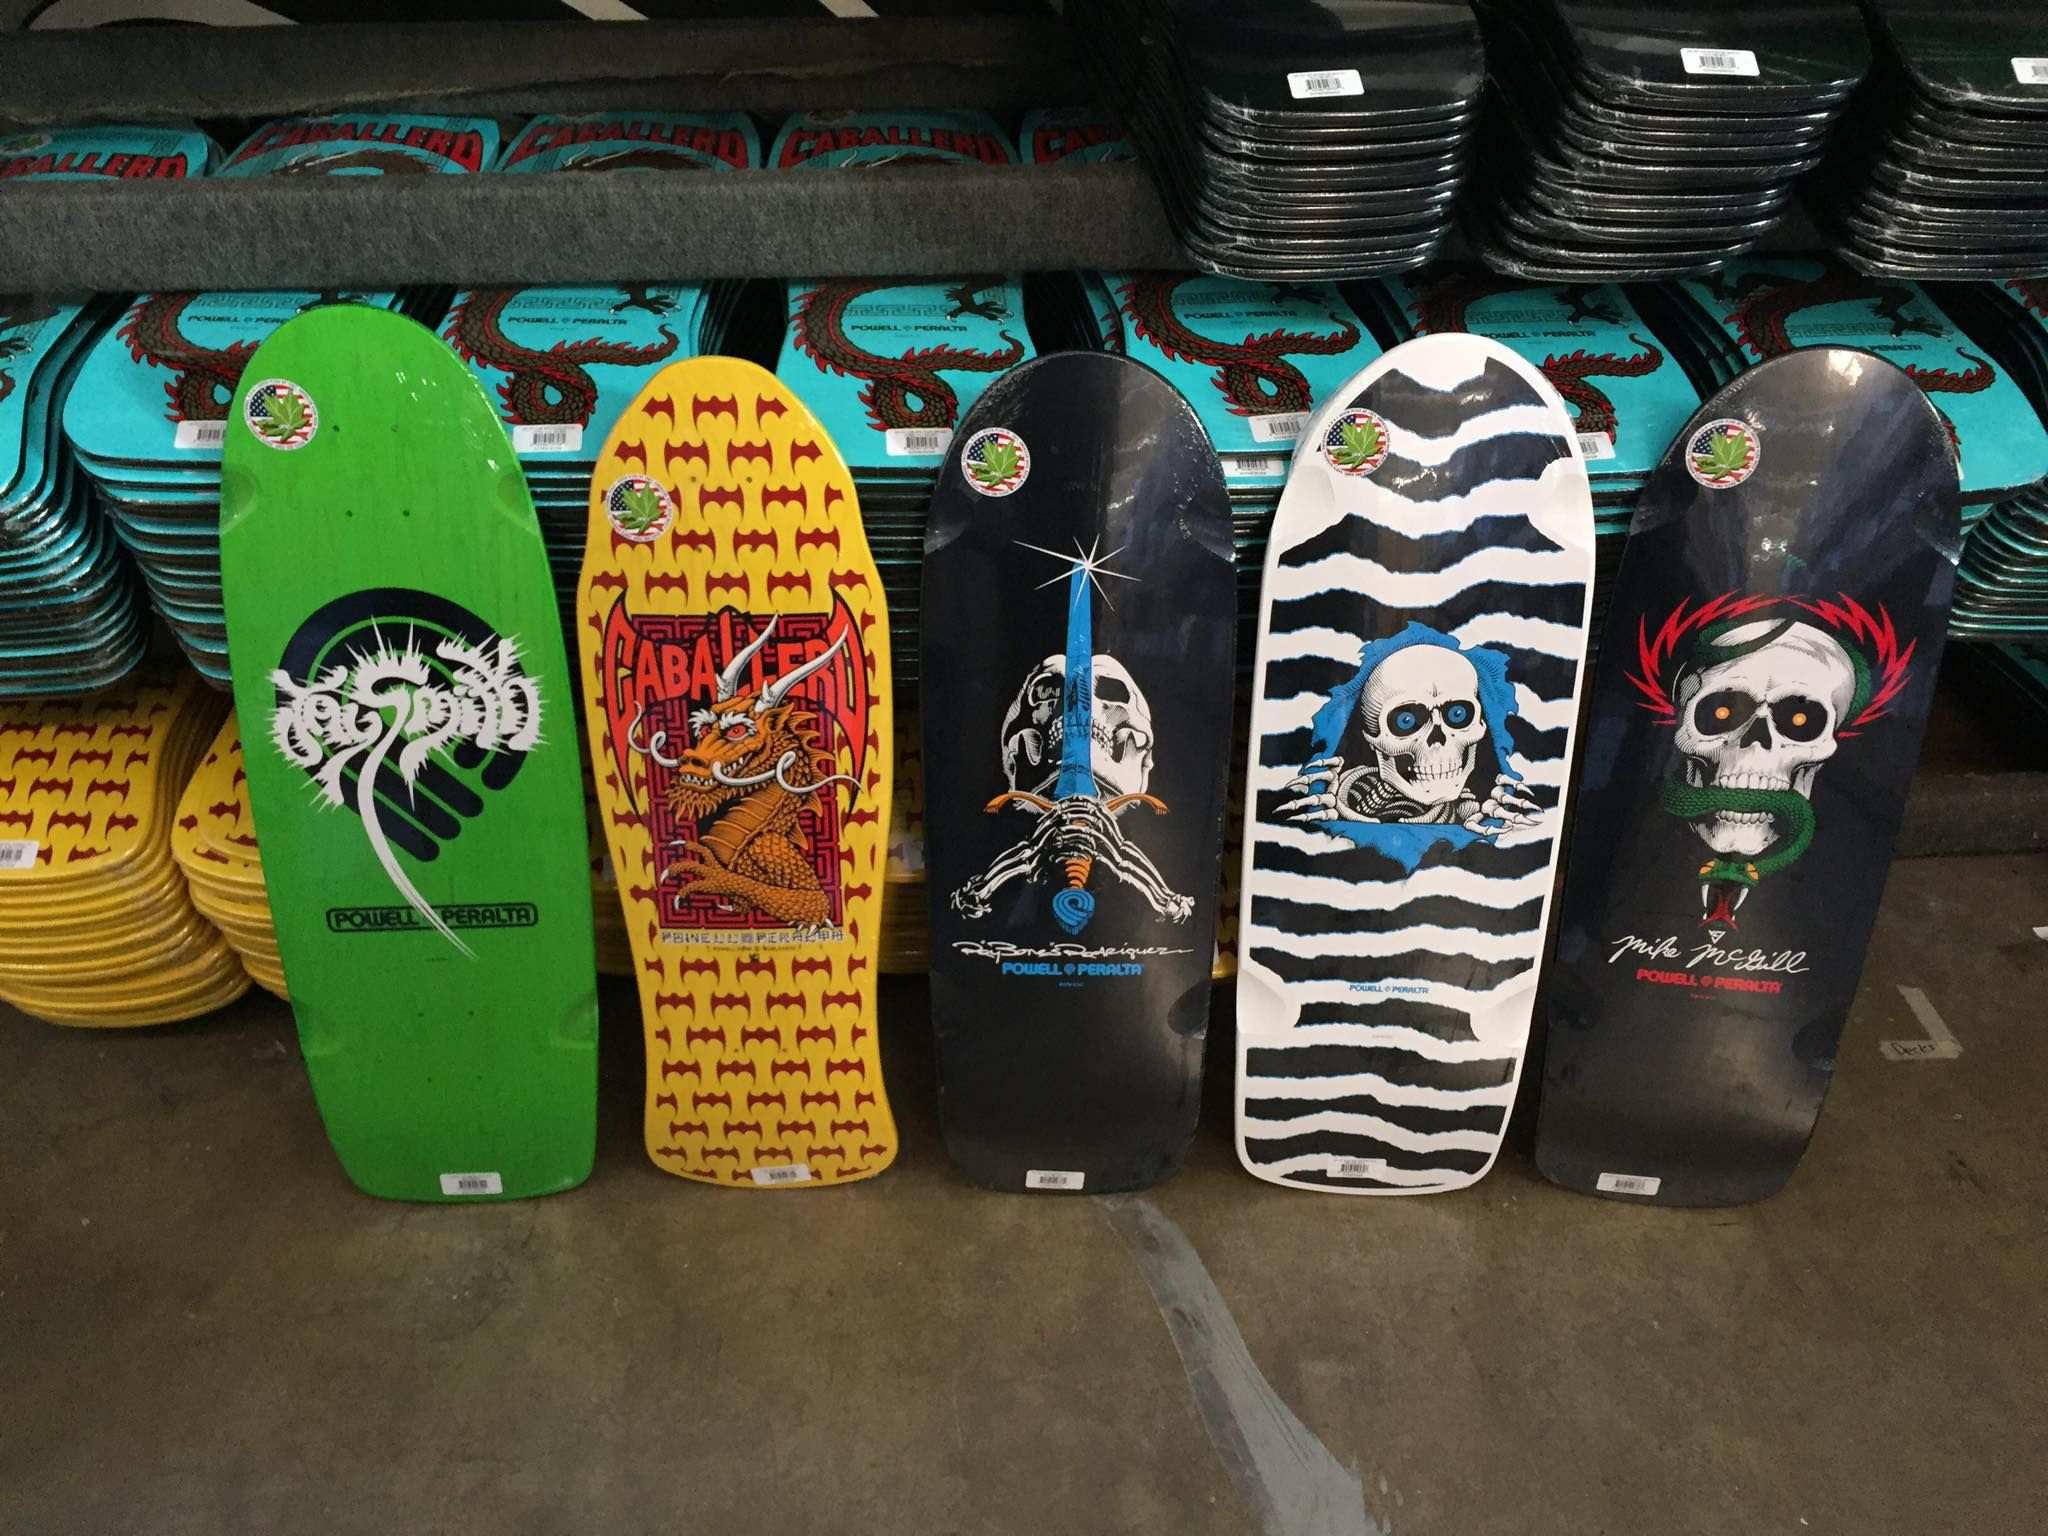 Classics in stock at our Skate One shipping department. Available online and at most skate shops!